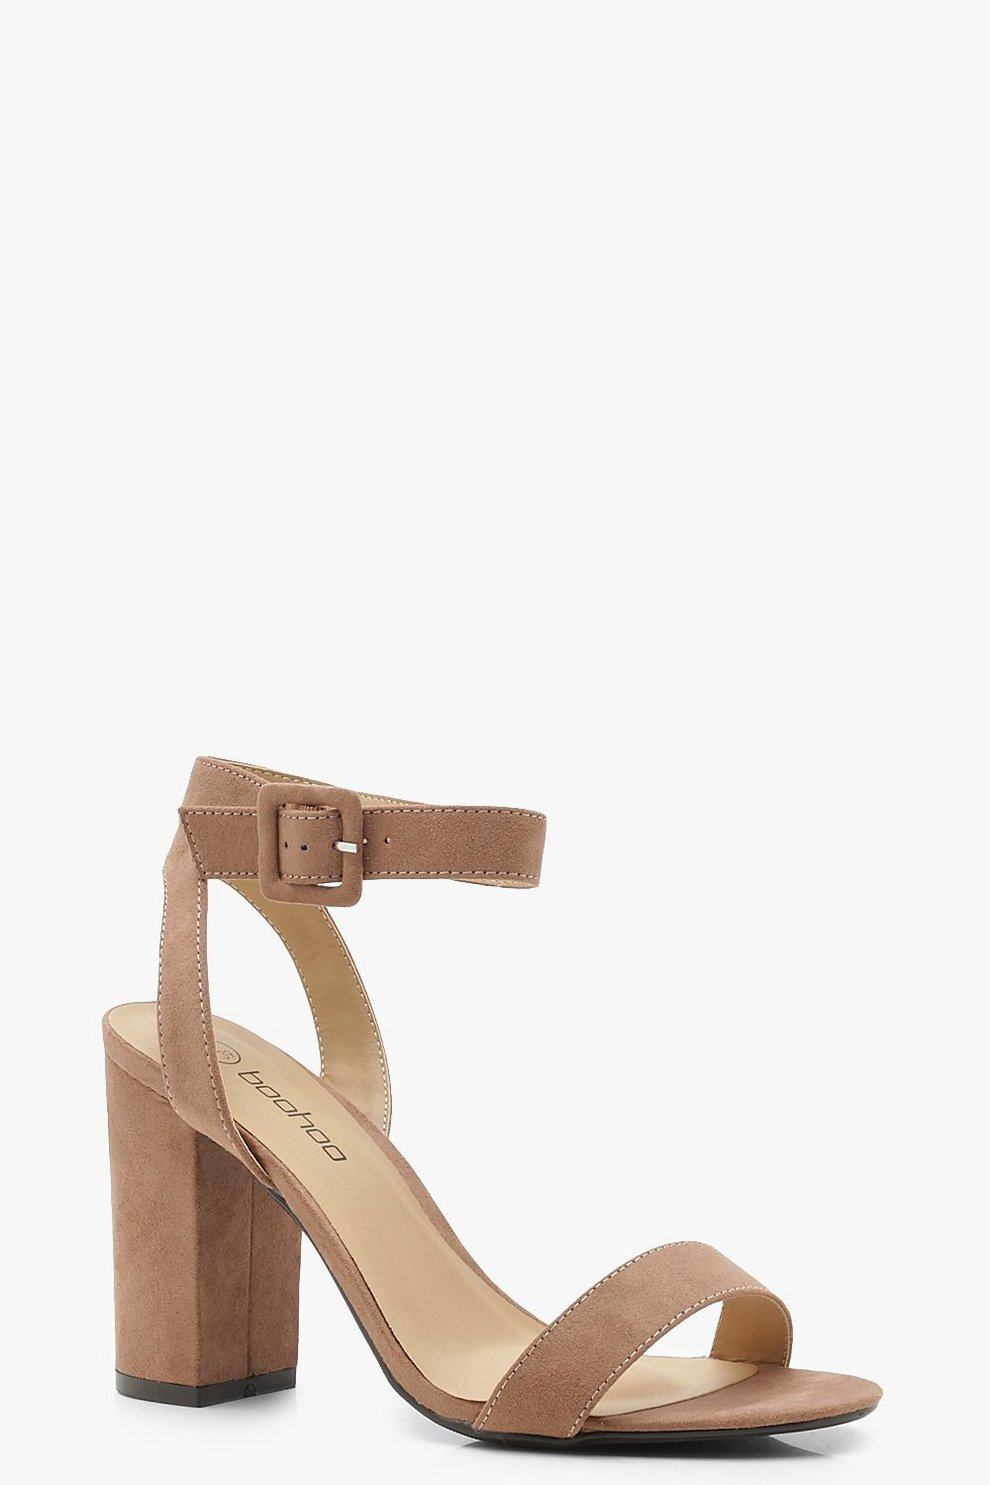 342af0a58ec7 Two Part Block Heels